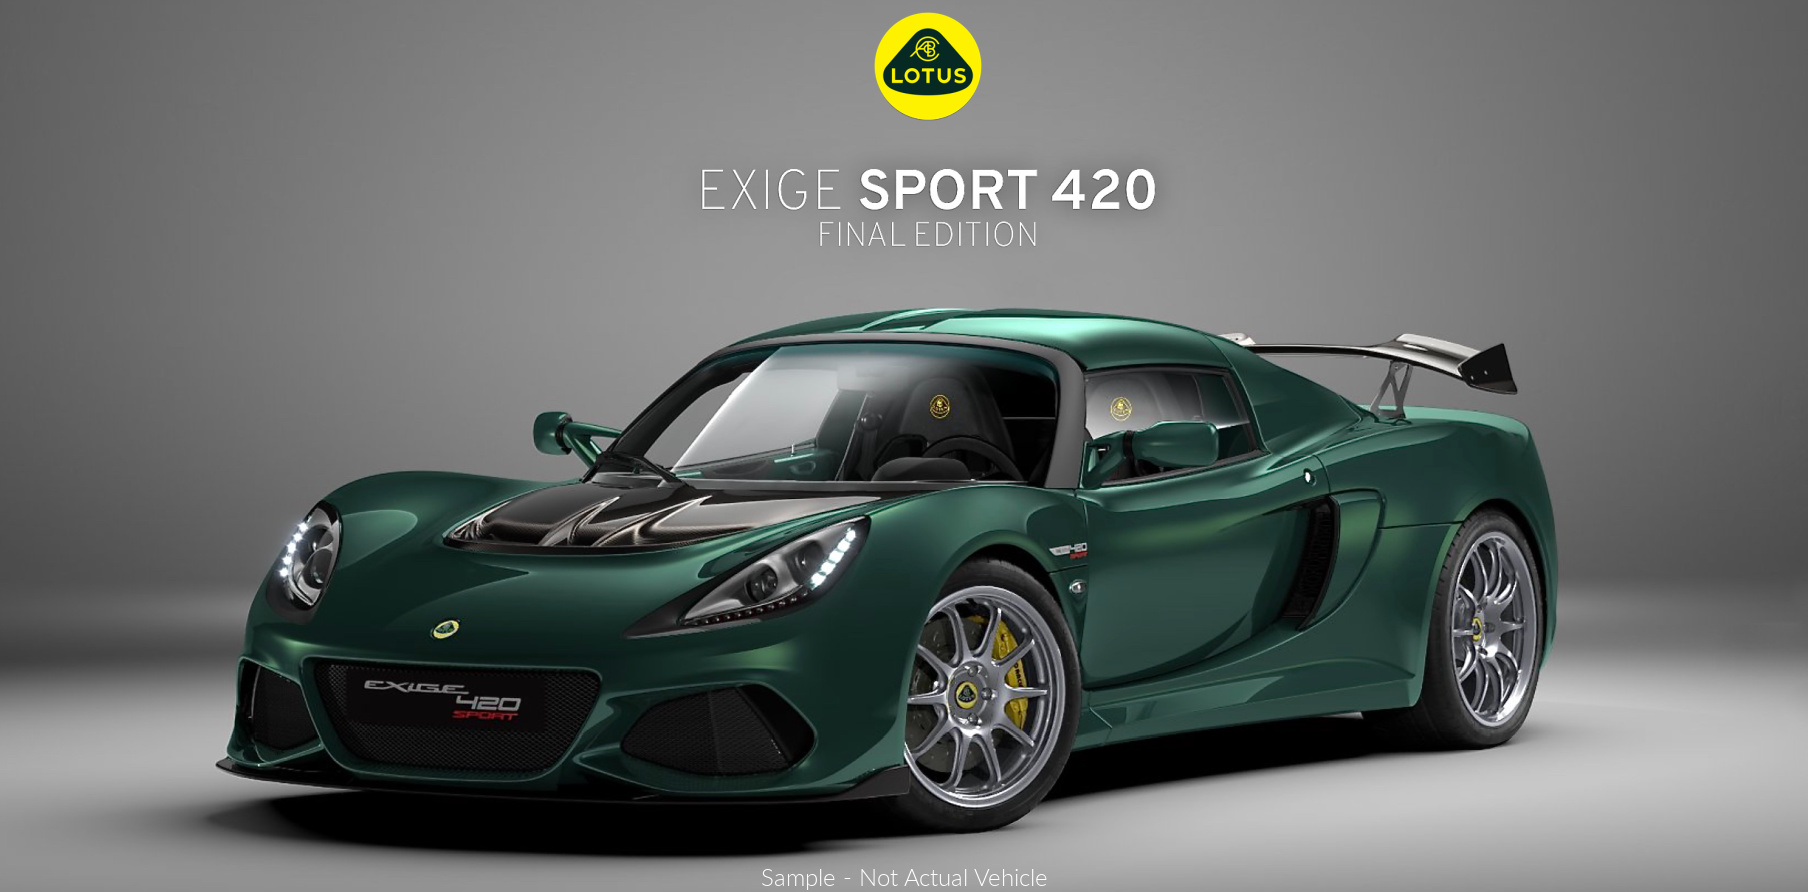 Lotus Exige Sport 420 for Sale Perth Final Edition